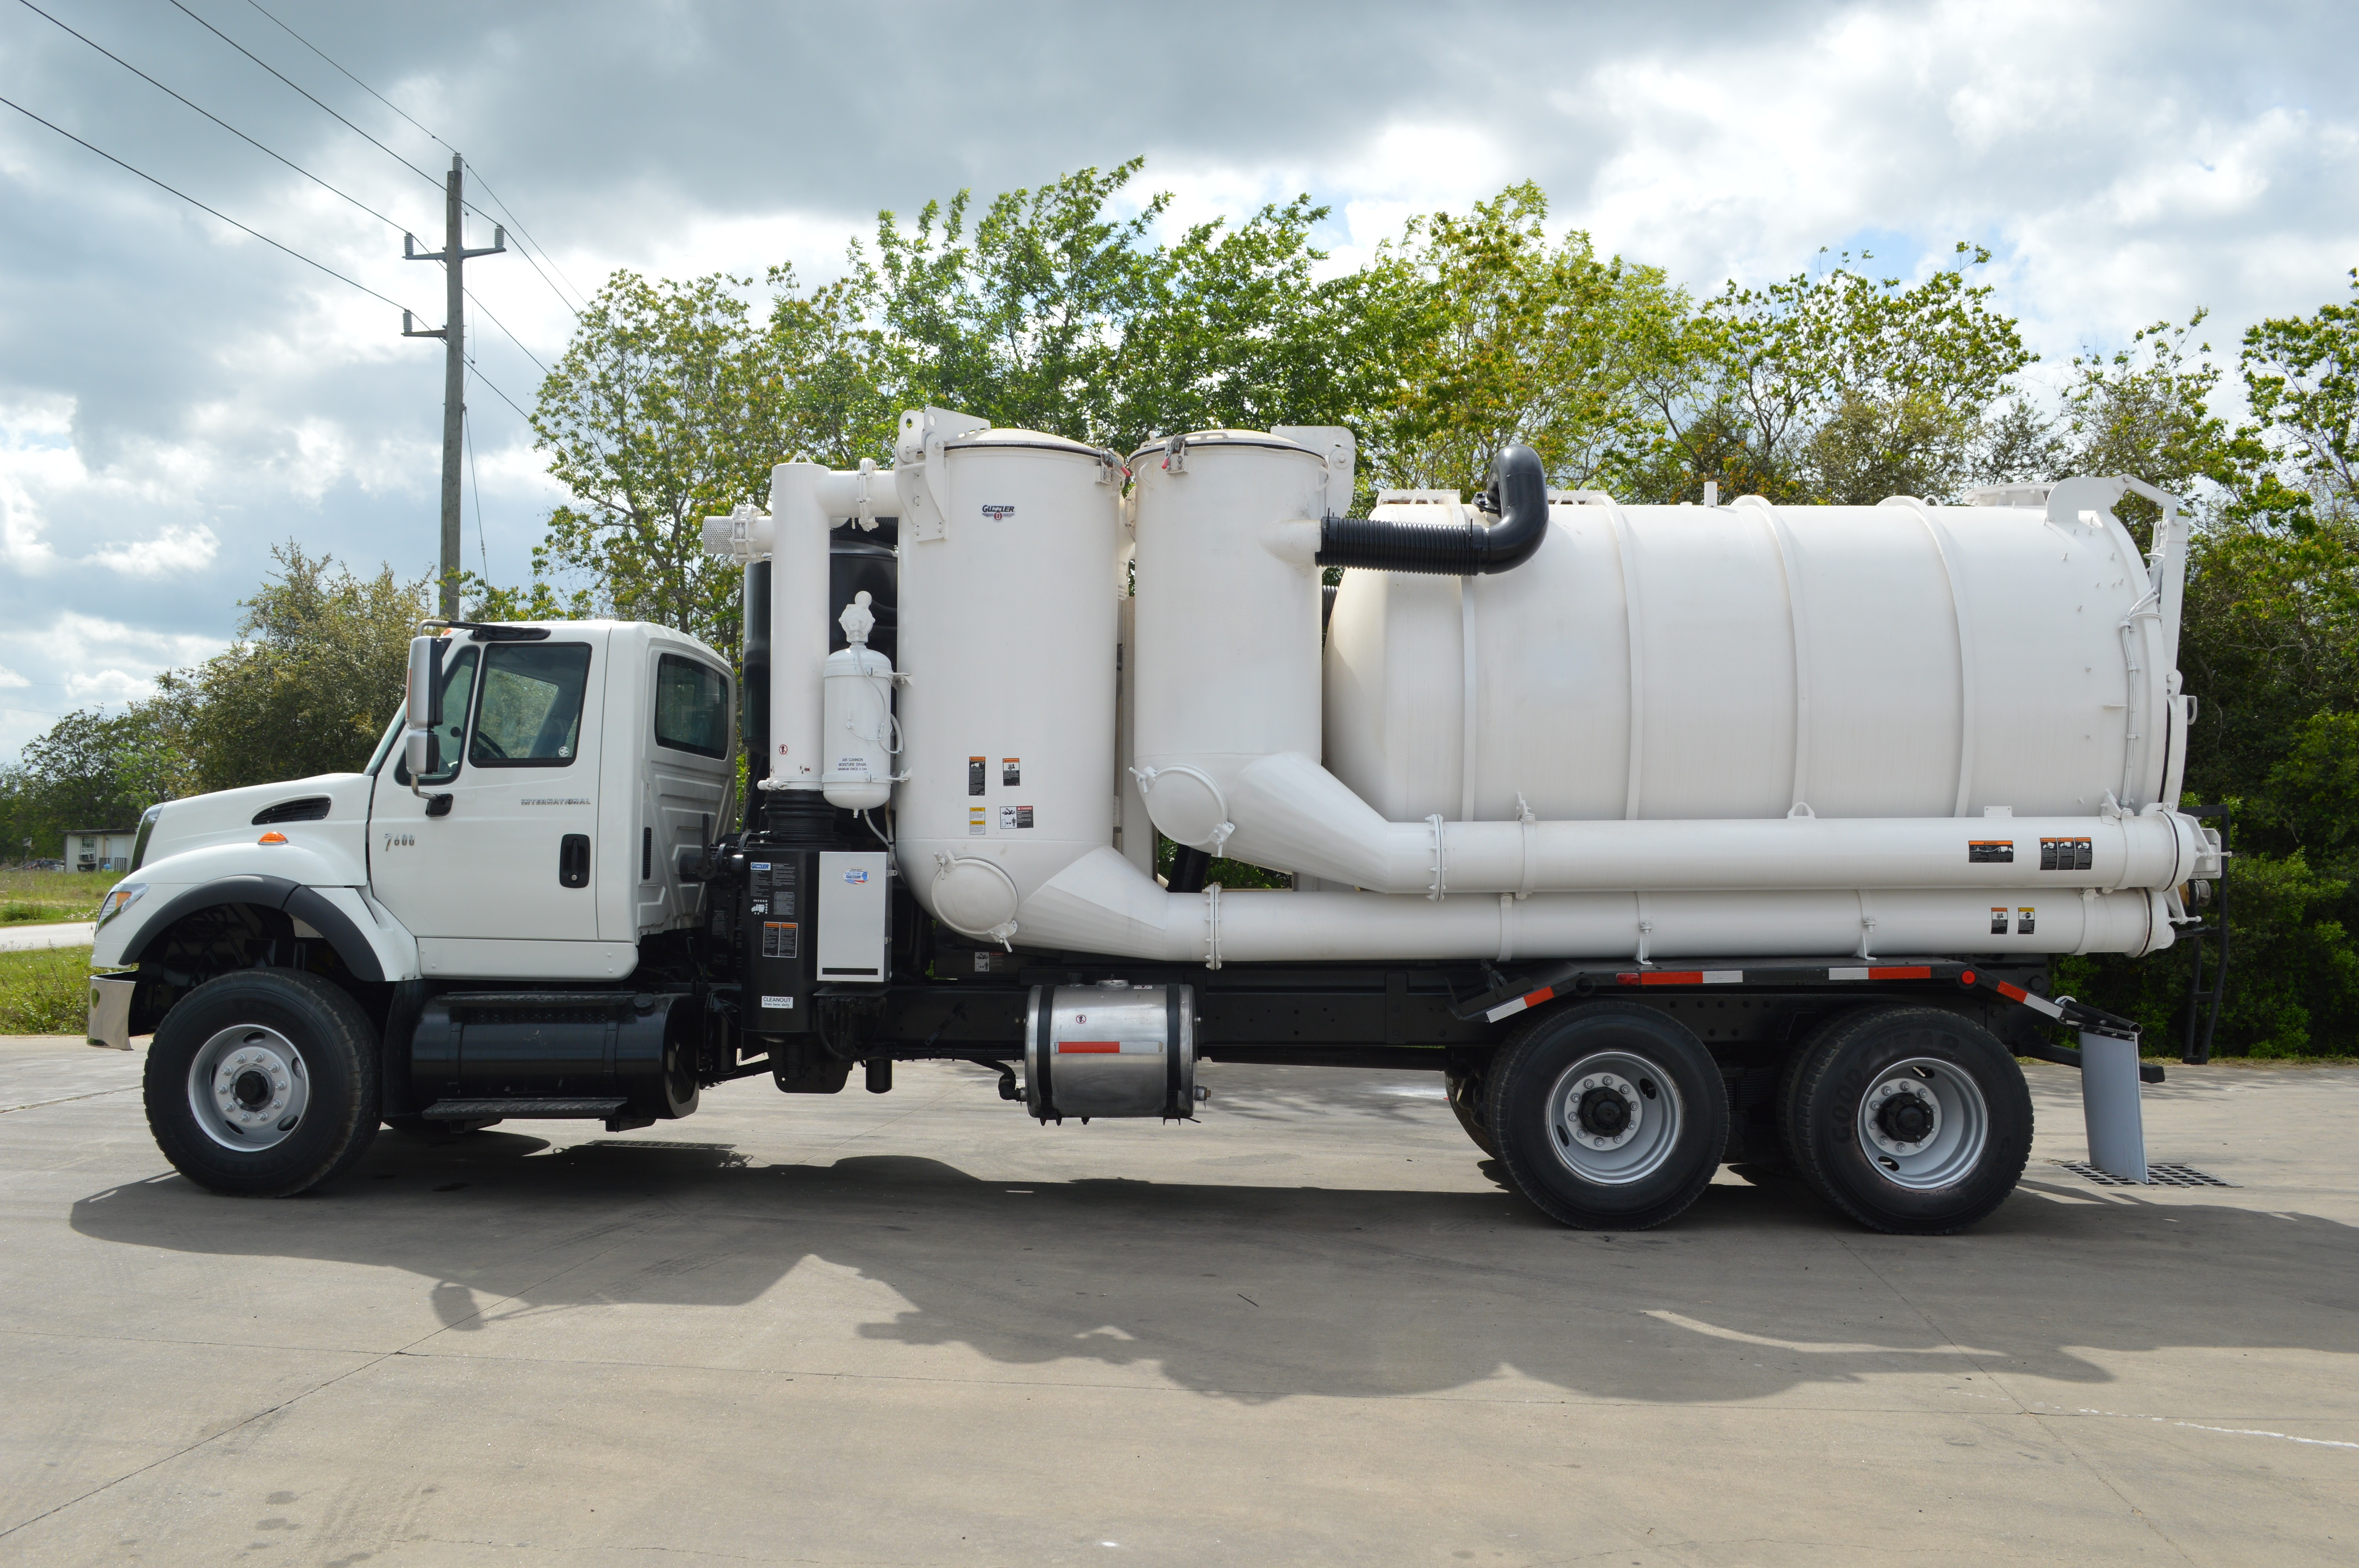 Used 2004 International 7600 - Industrial Air Movers in